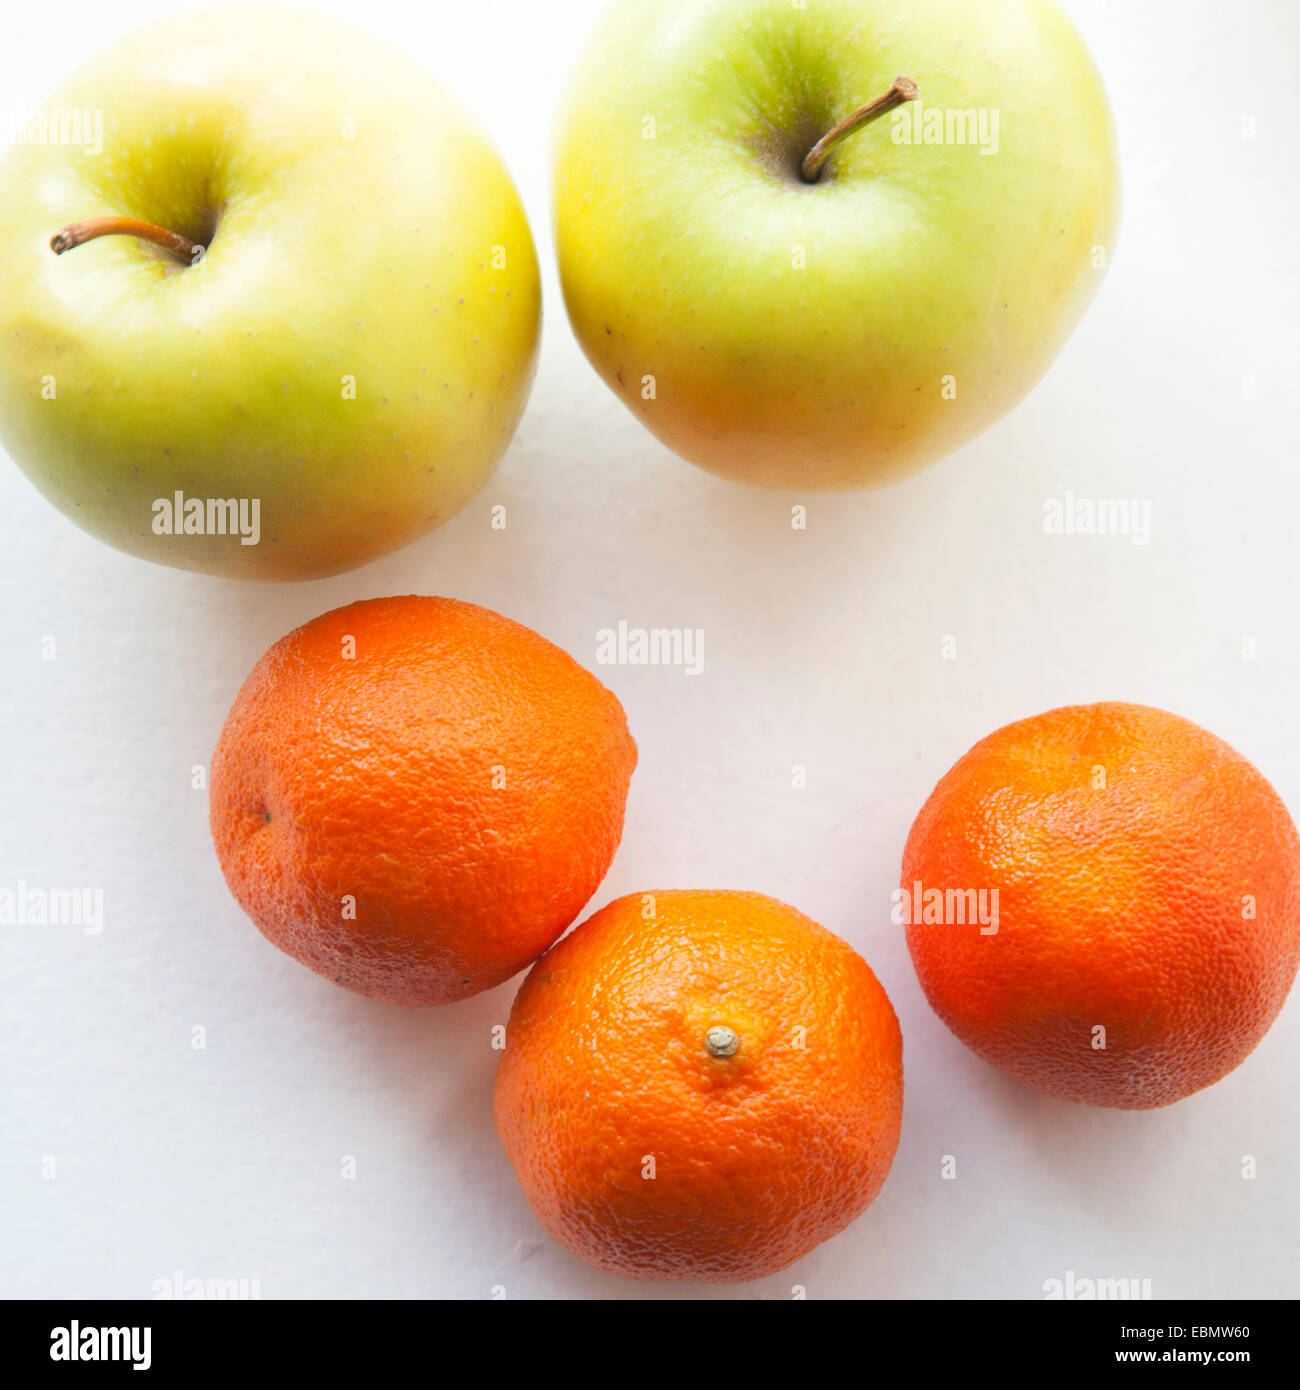 Top view of apples and oranges - Stock Image